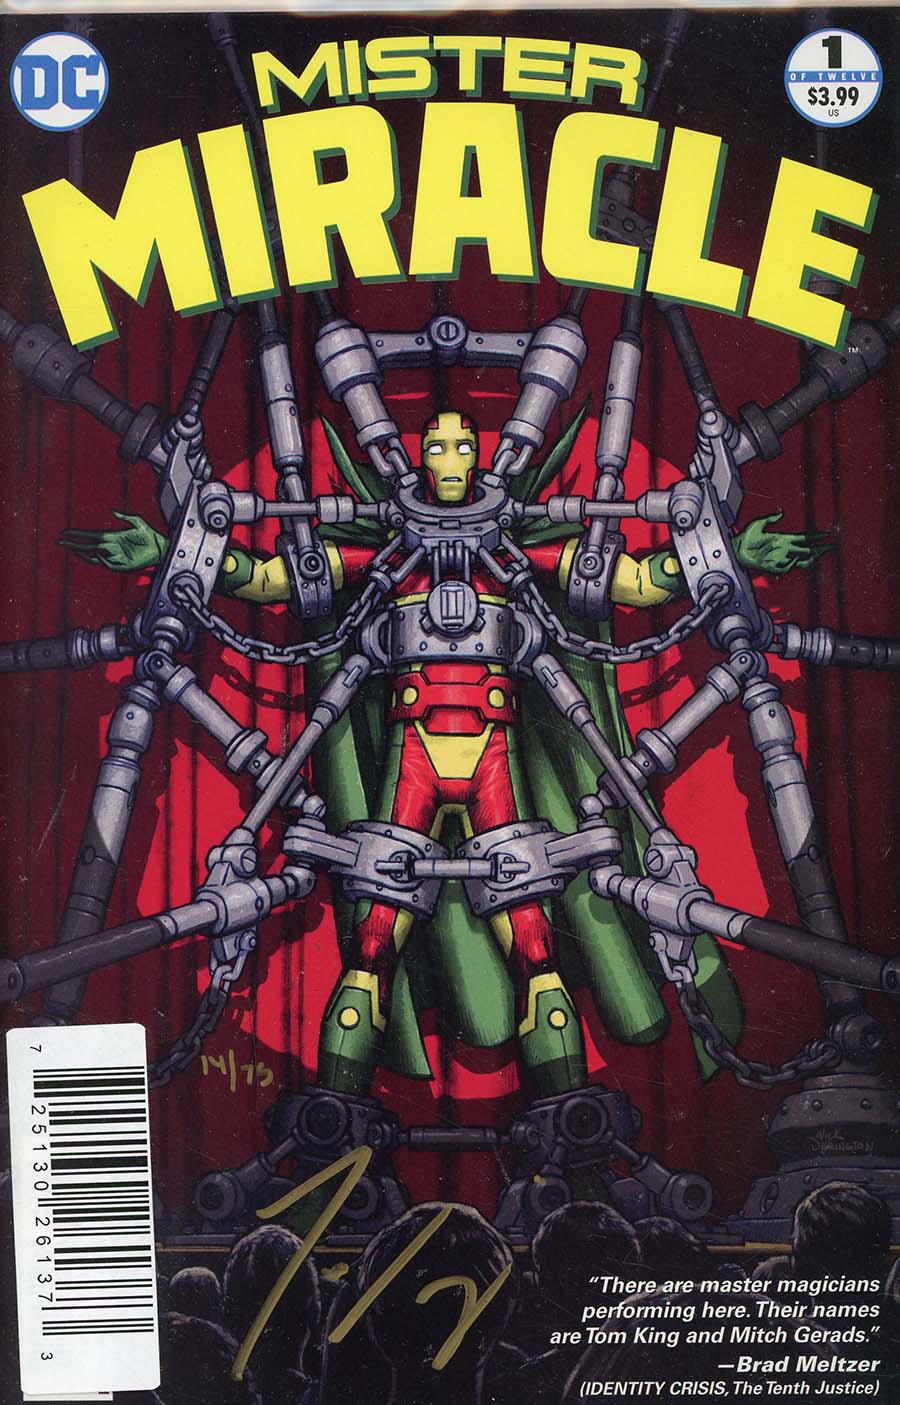 Mister Miracle Vol 4 #1 Cover C DF Signed By Tom King